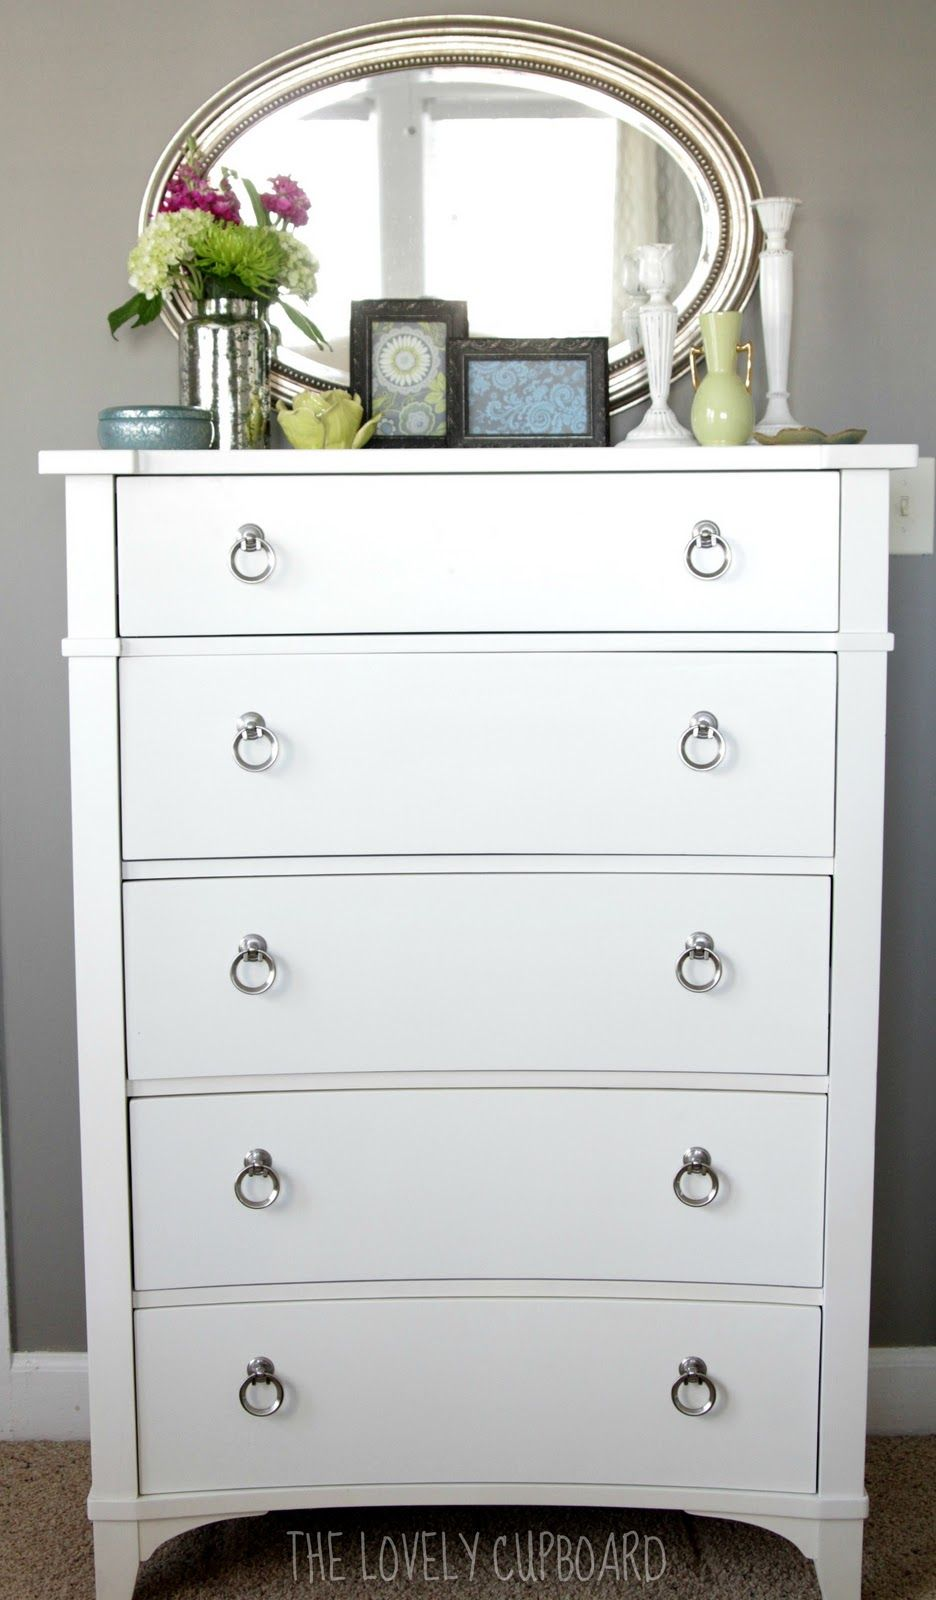 6th Street Design School Feature Friday The Lovely Cupboard Dresser Decor Bedroom Dressers Dresser Decor Bedroom